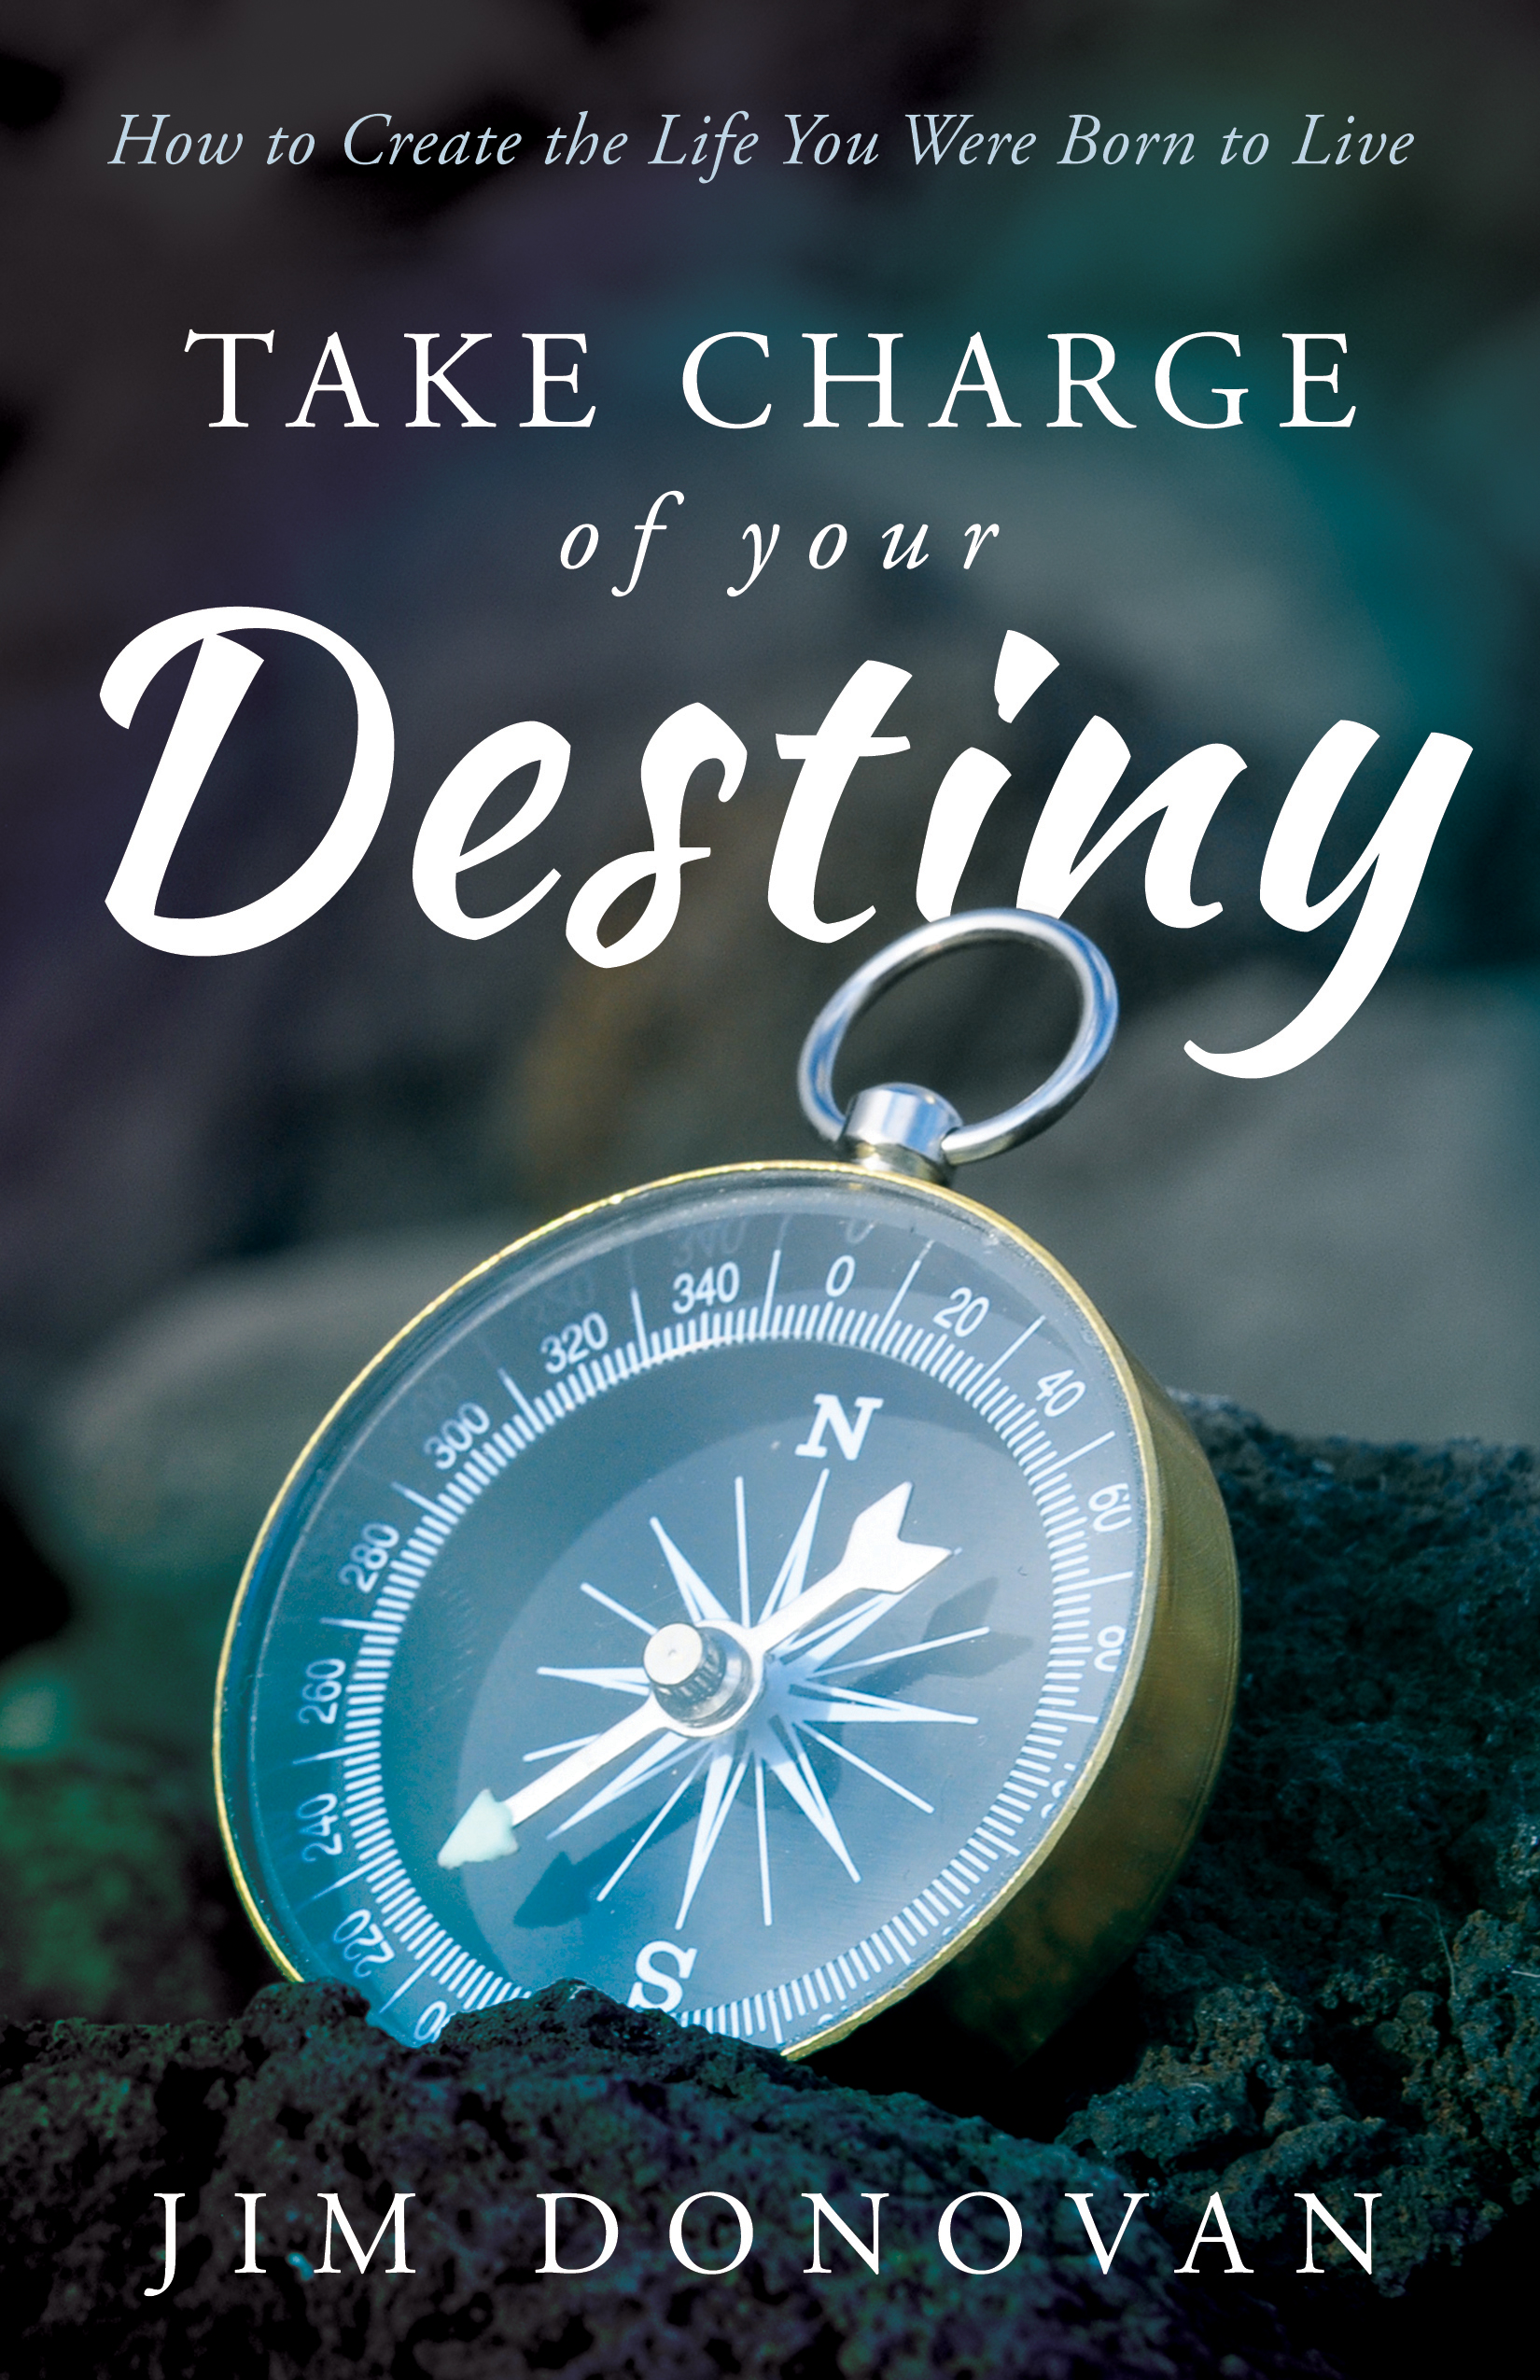 Take Charge of Your Destiny - By jim donovan